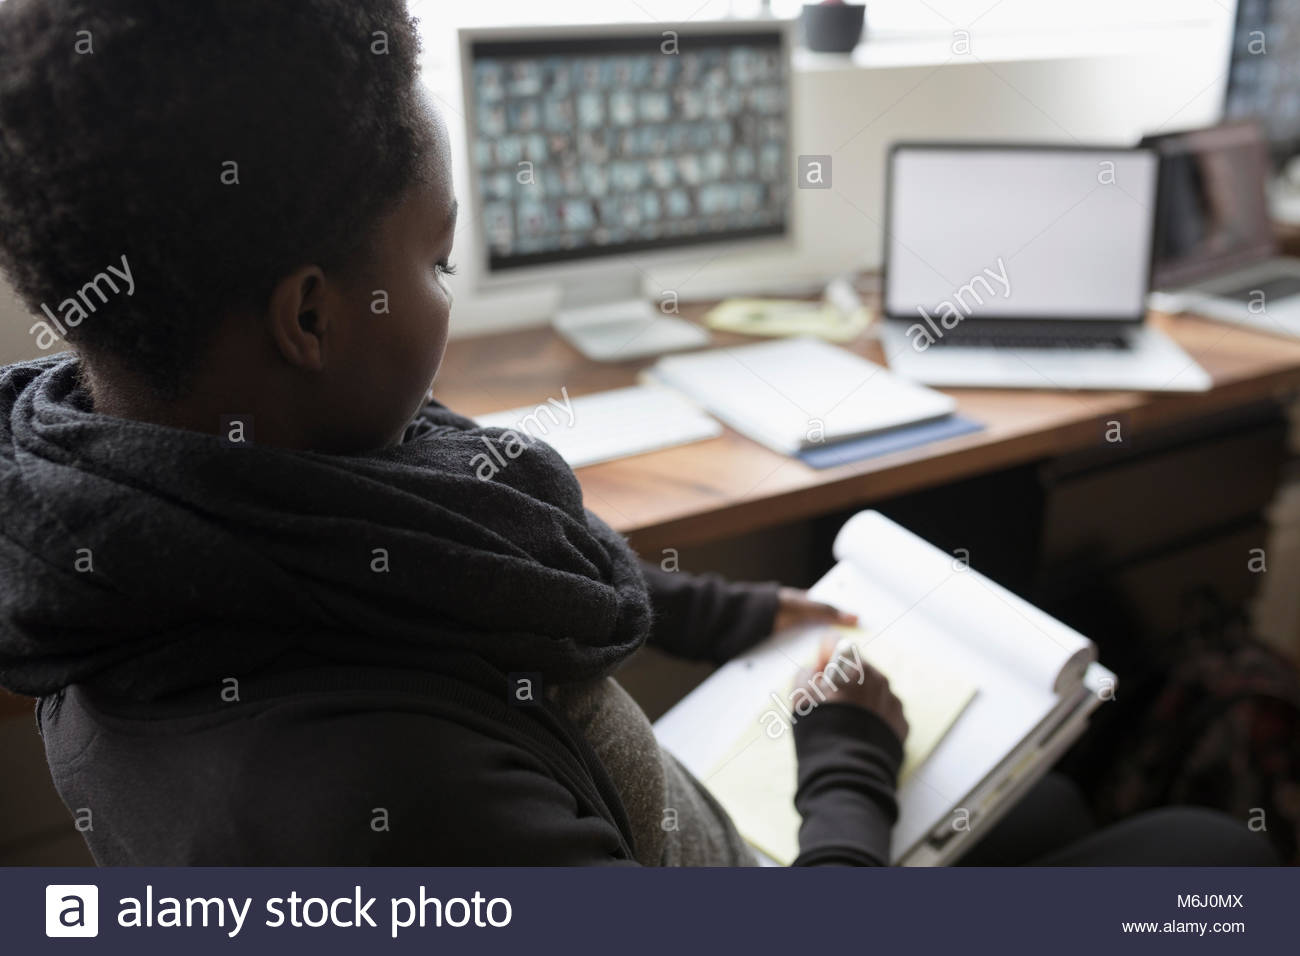 Female photo editor brainstorming, writing in office - Stock Image